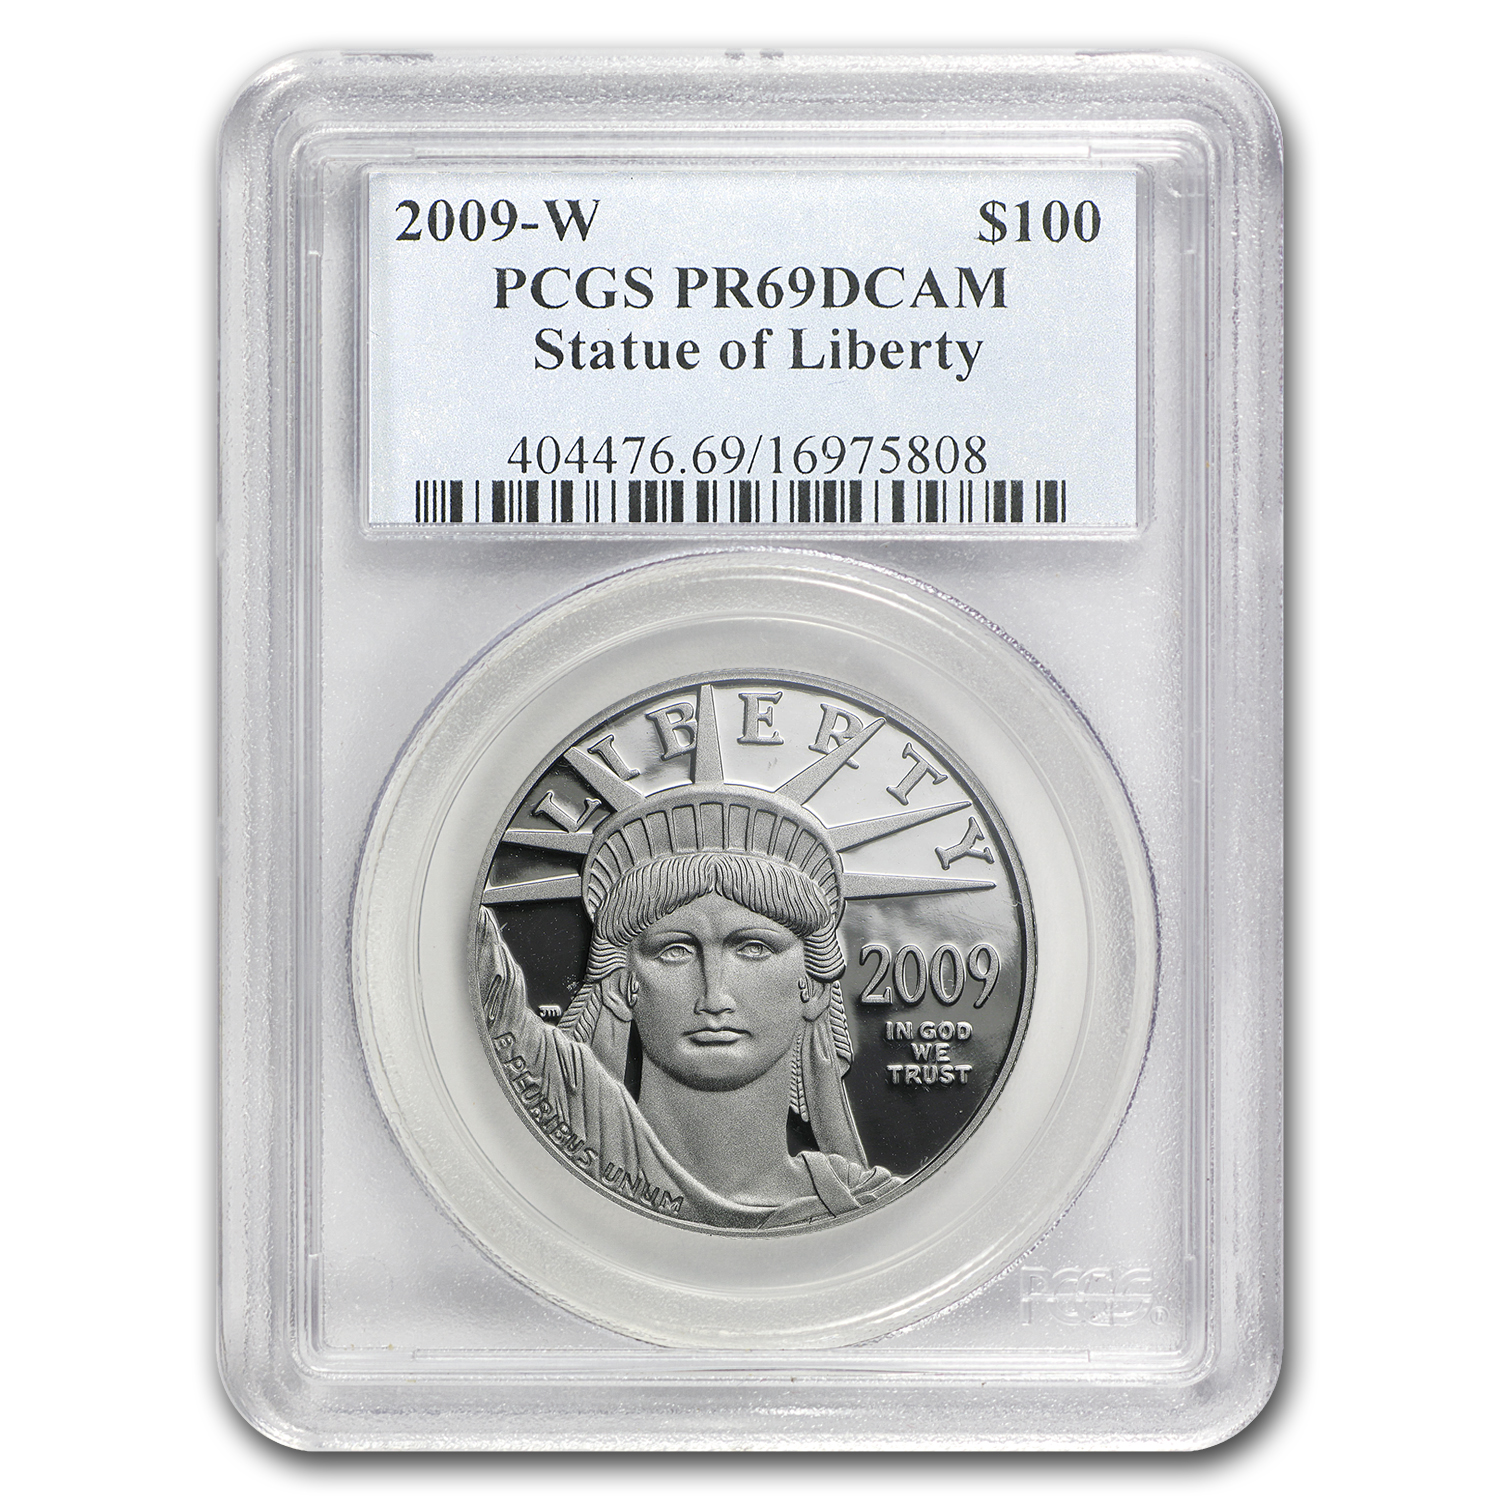 2009-W 1 oz Proof Platinum American Eagle PR-69 PCGS